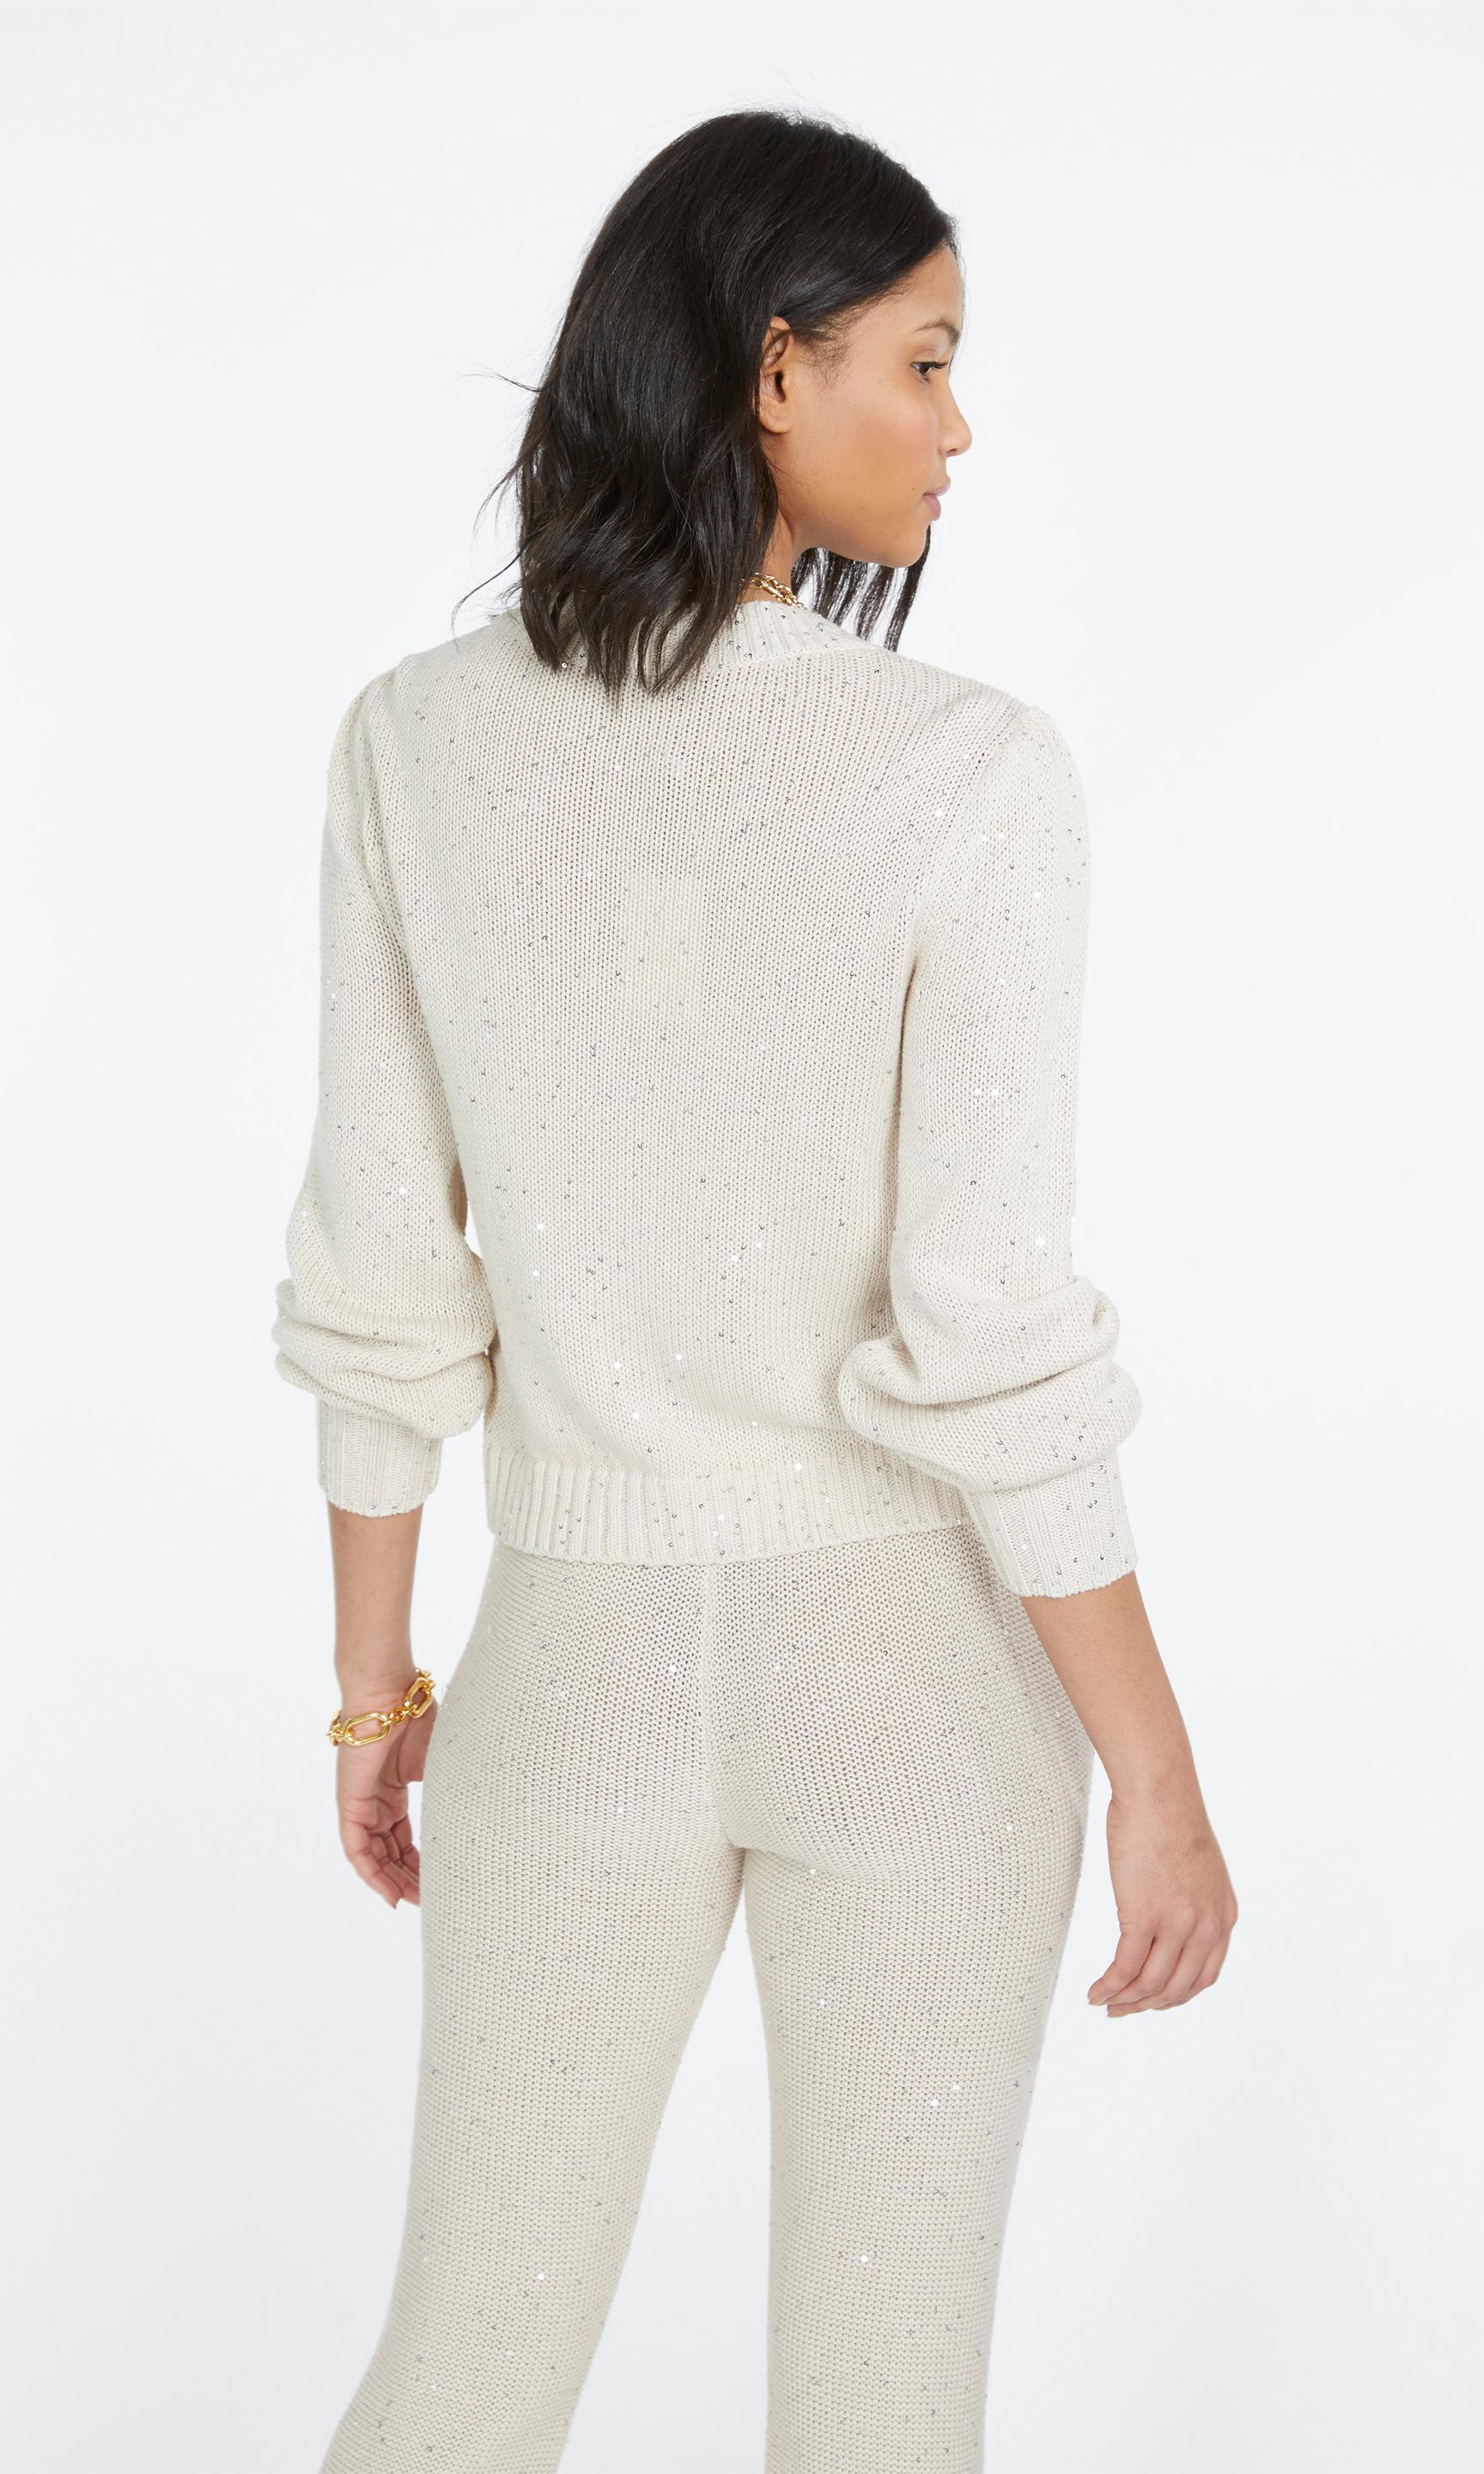 Lowell Sequin Knitted Cardigan 6